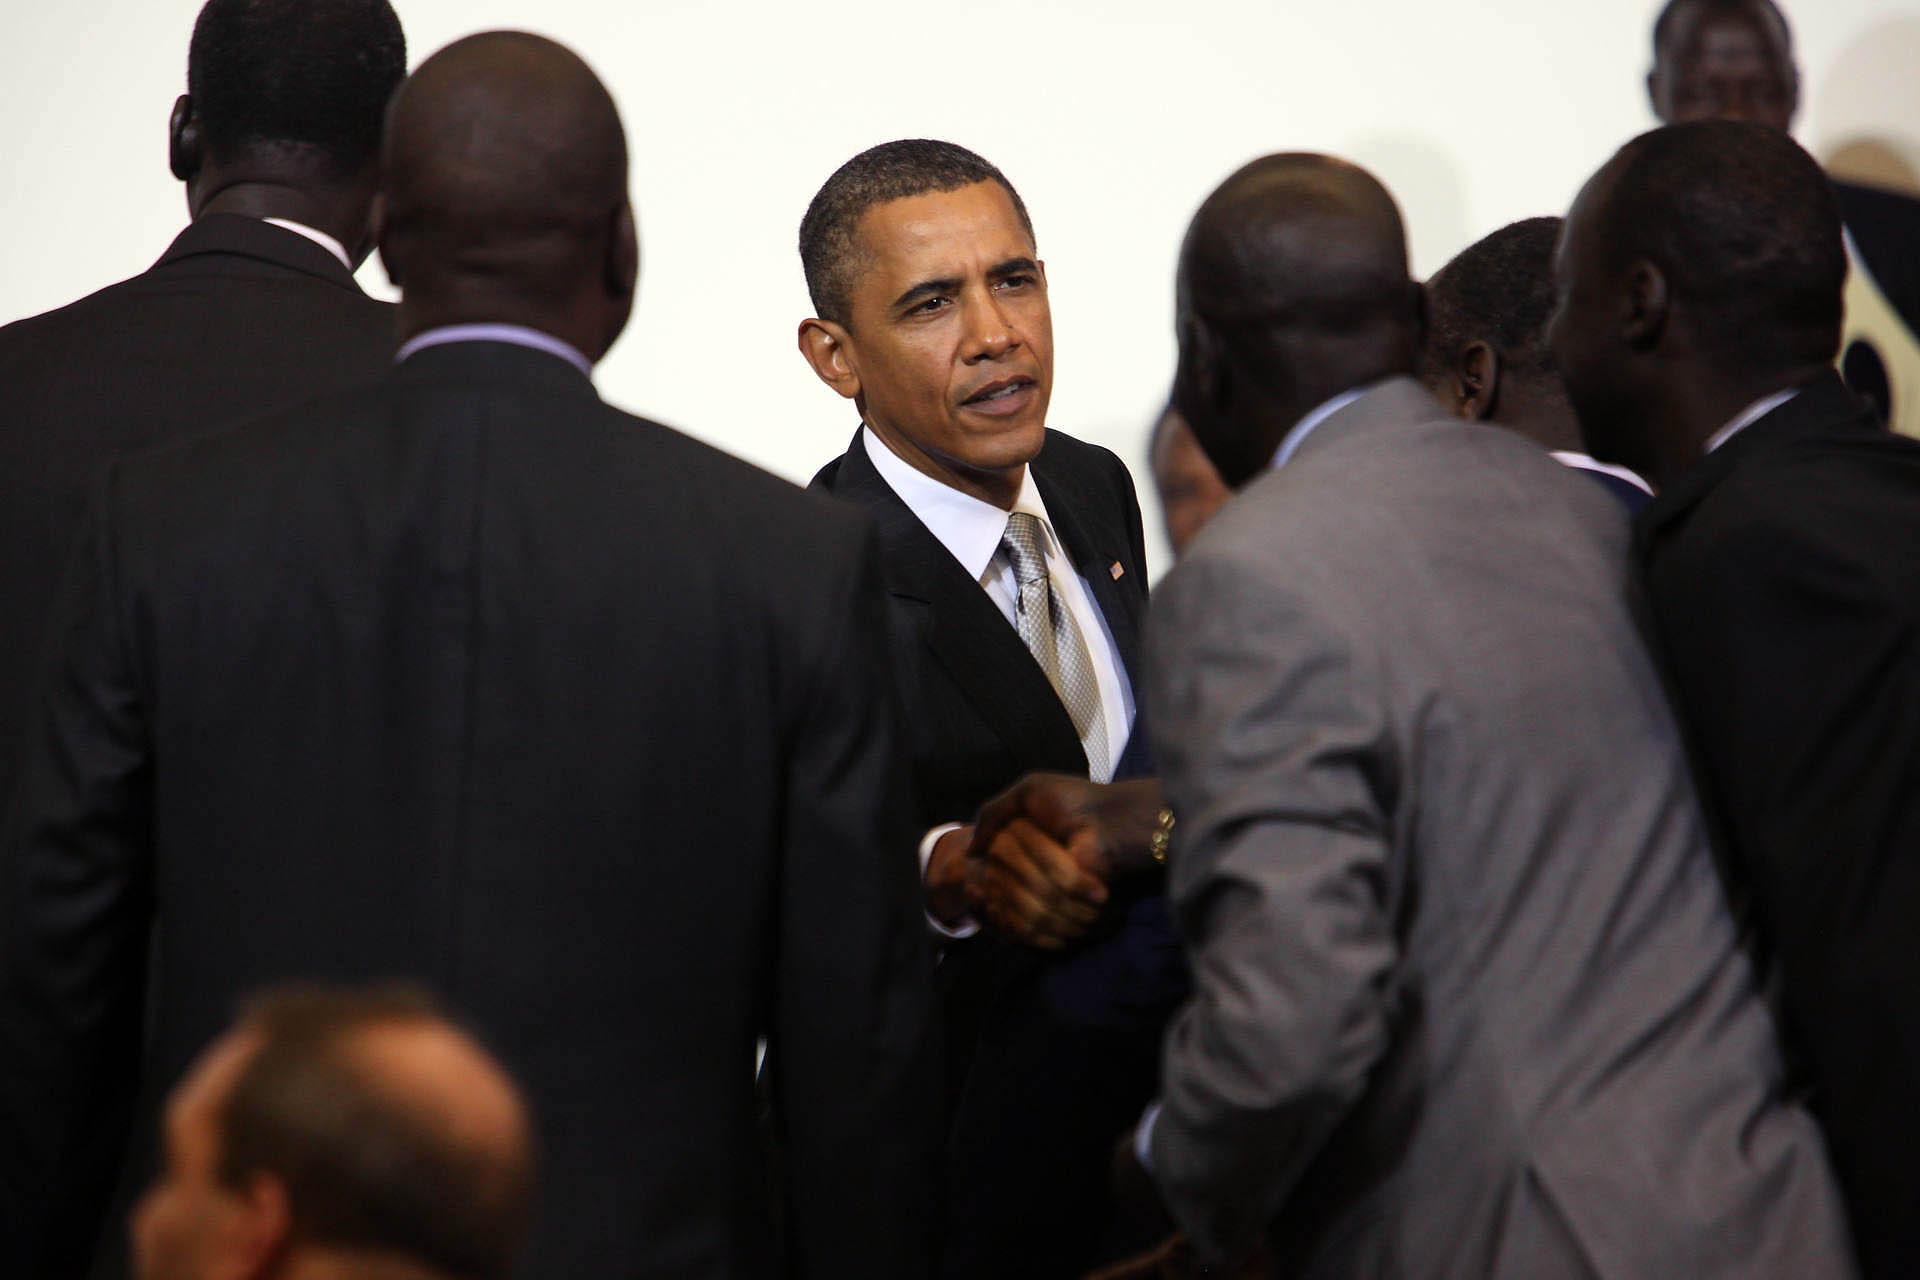 President Barack Obama Shakes Hands at a Ministerial Meeting on Sudan